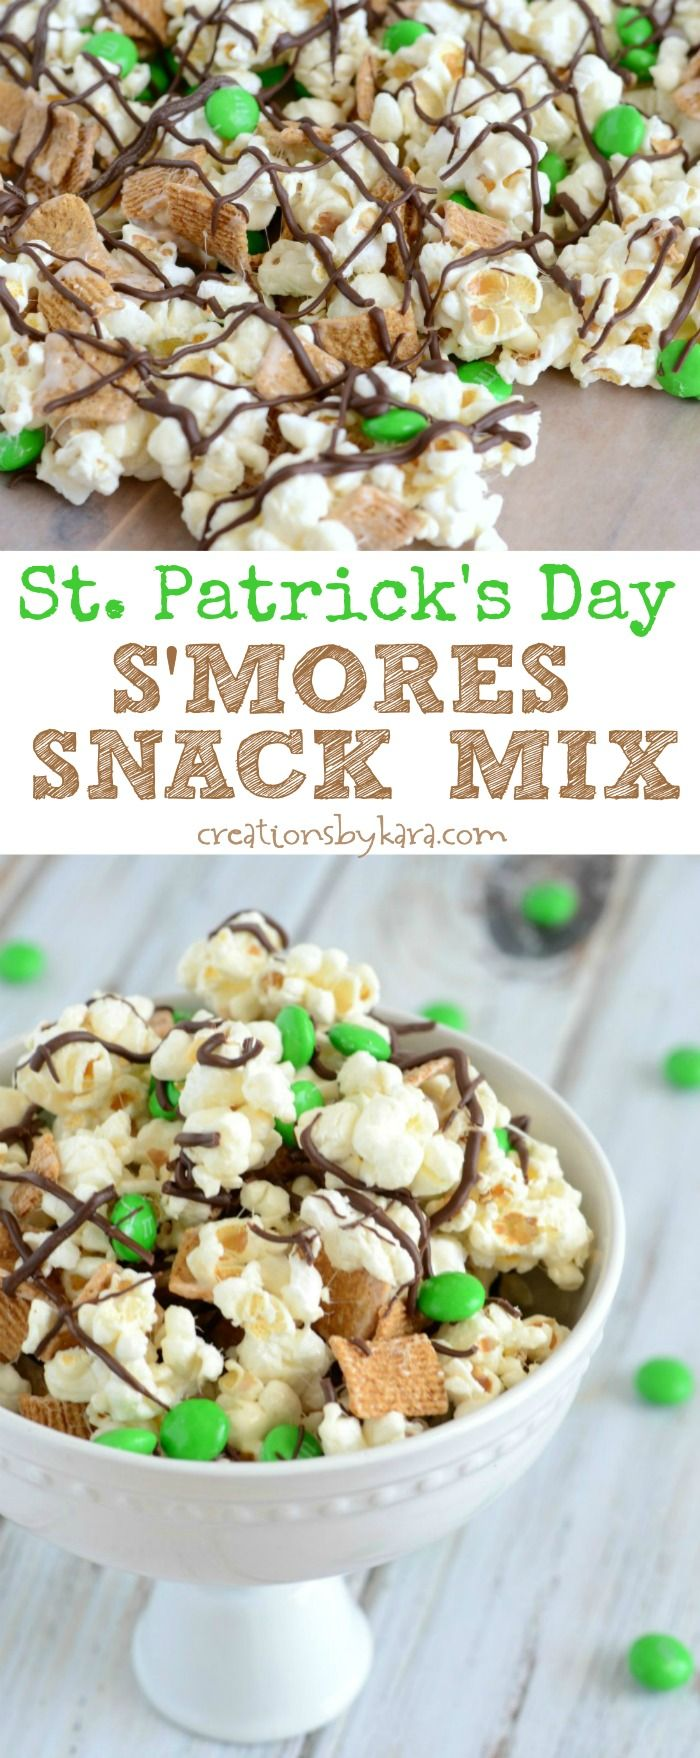 This St. Patricks Day Smores Snack Mix is easy to make, and so yummy!